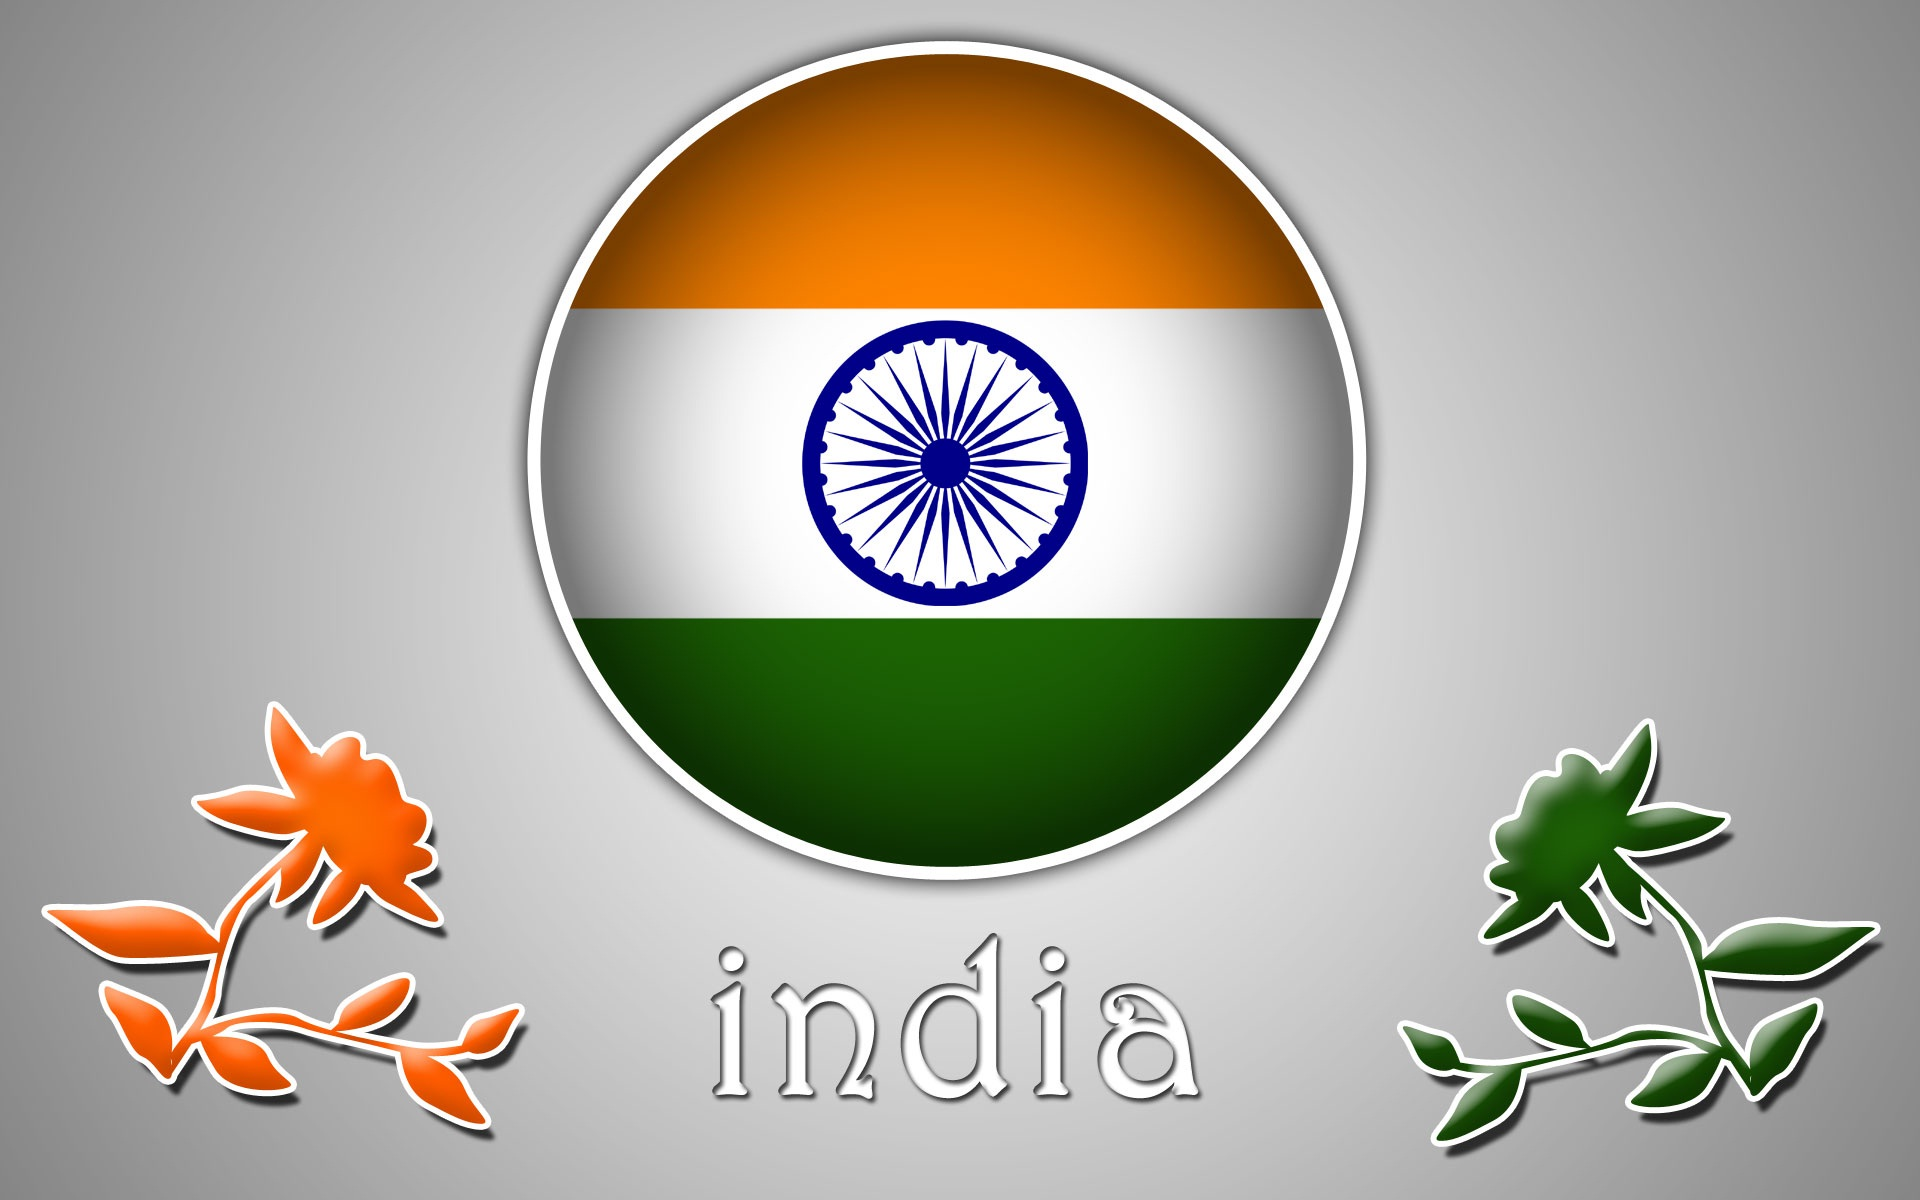 Indian Flag Hd Wallpaper Posted By Ryan Sellers